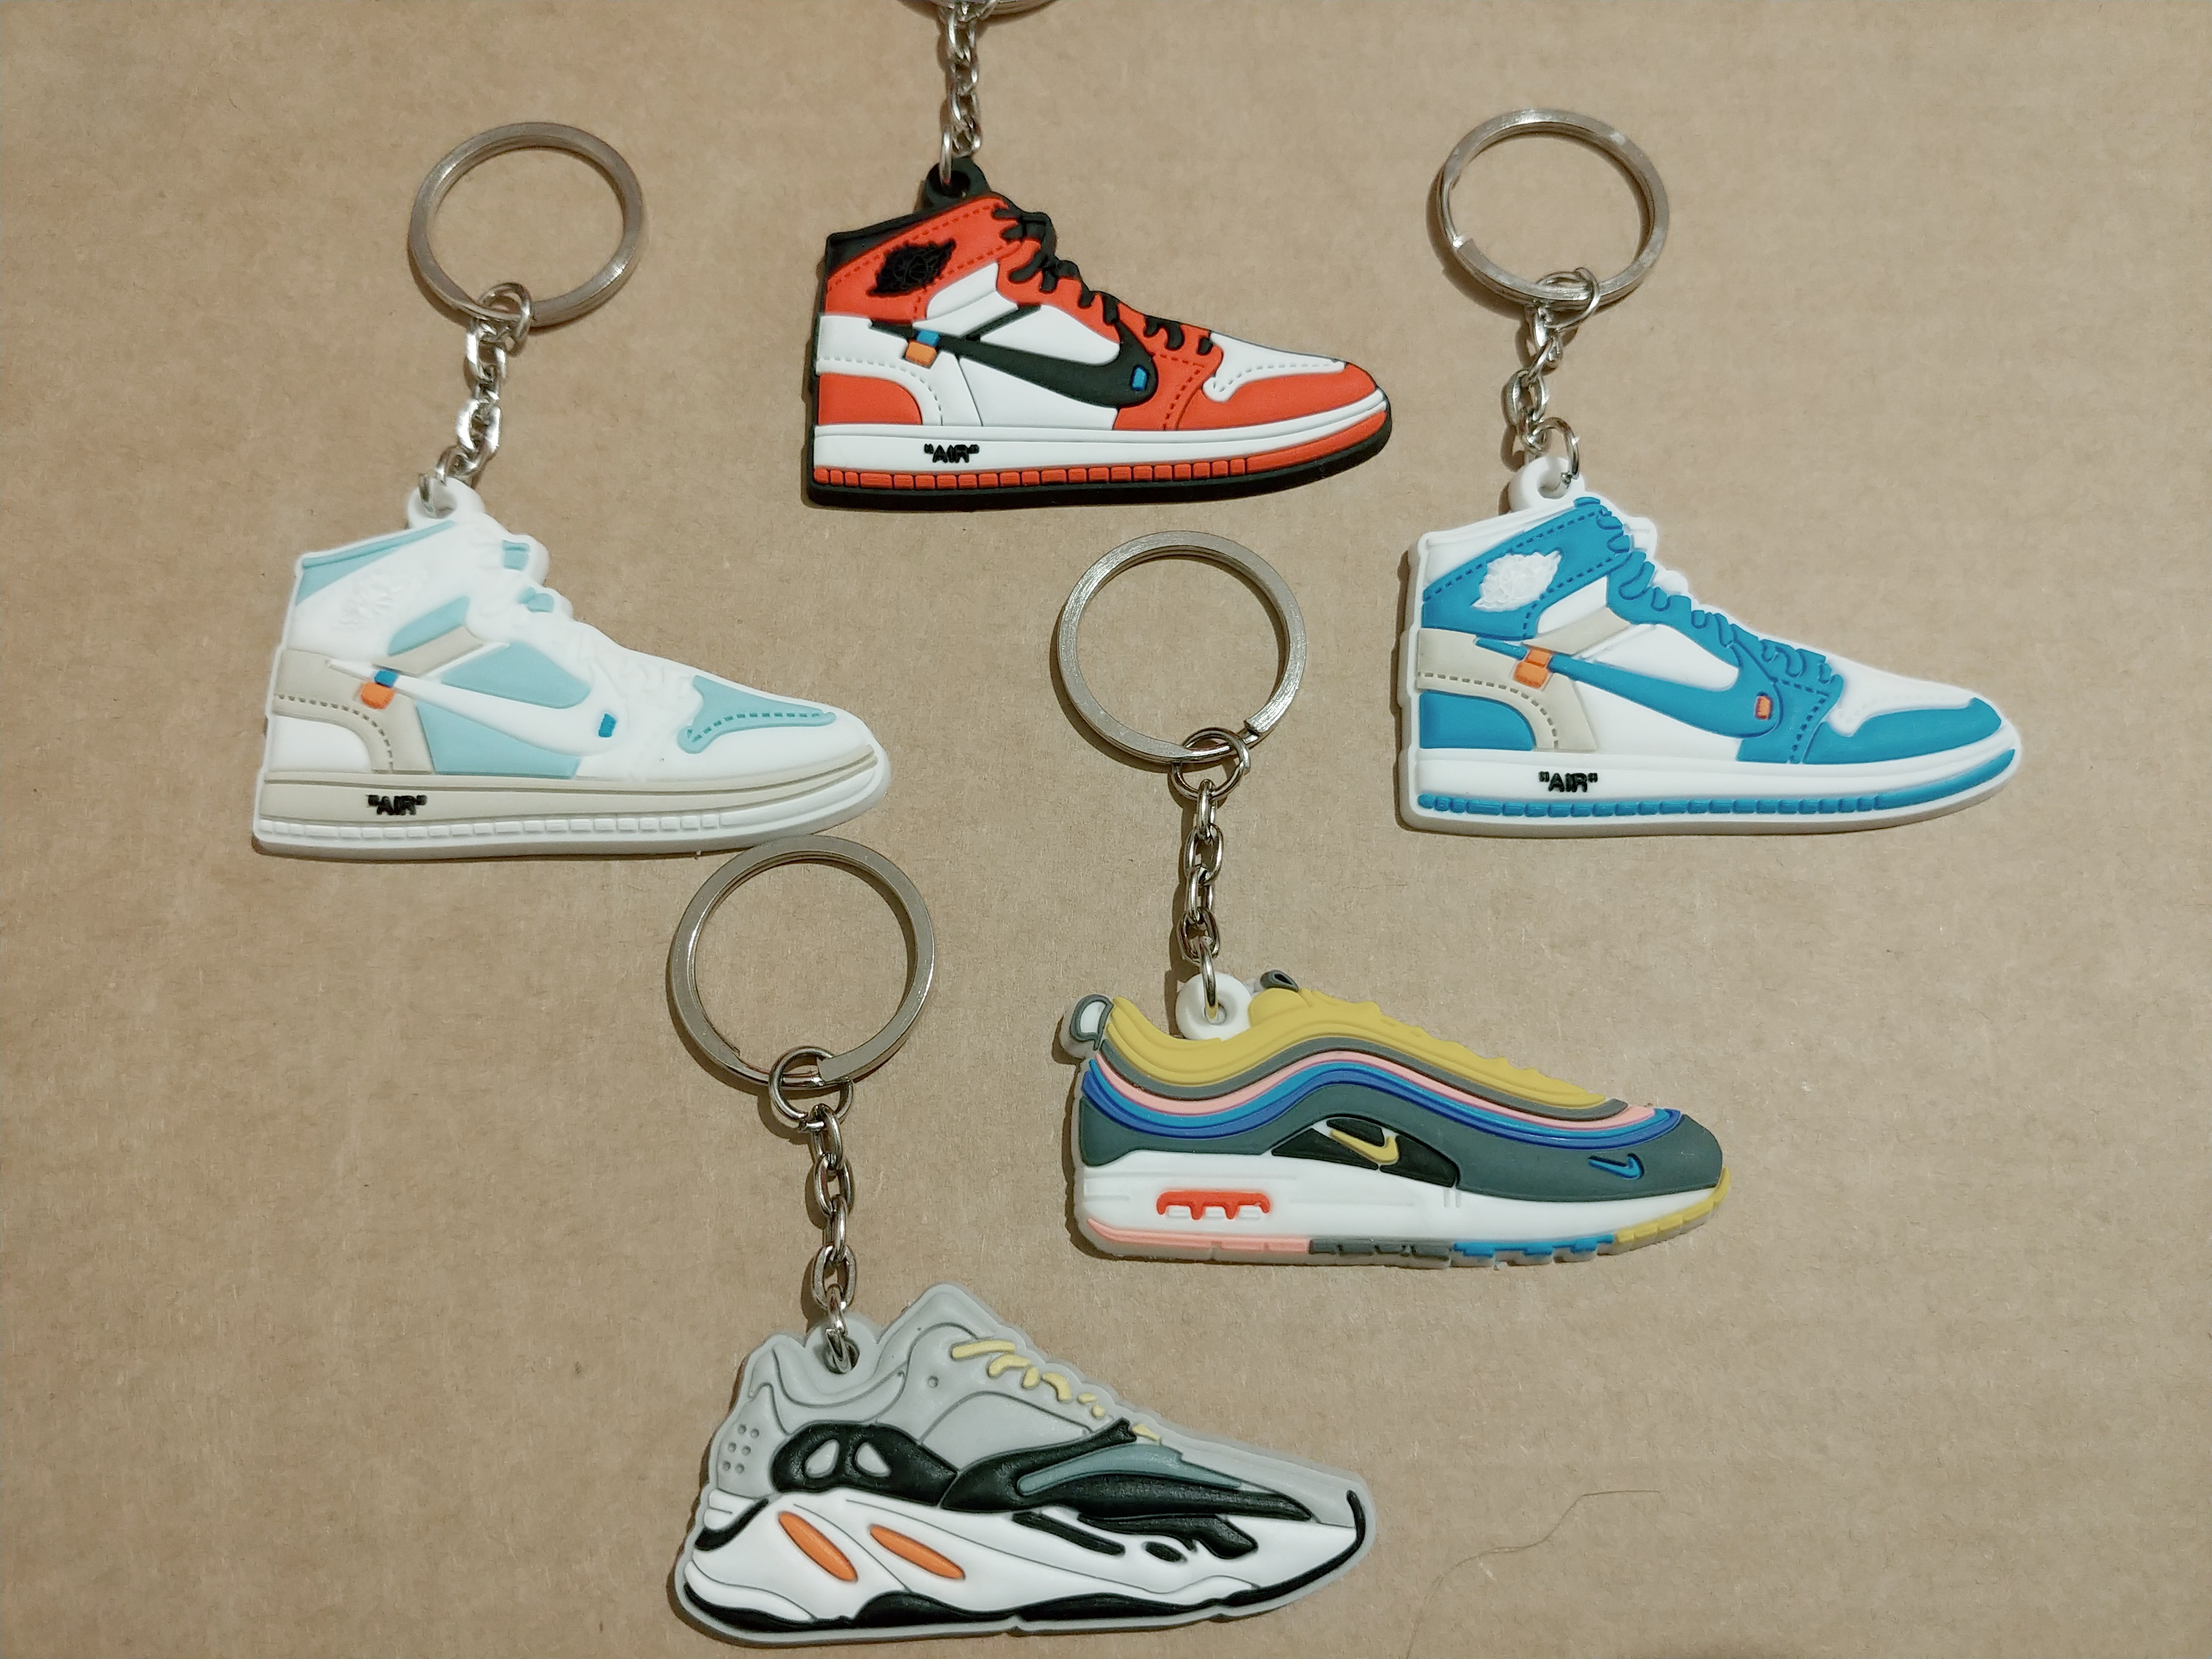 335c4a64bb0ac Off-White ×. OFF-WHITE NIKE AIR JORDAN 1 + YEEZY 700 WAVE RUNNER + Sean  Wotherspoon ...